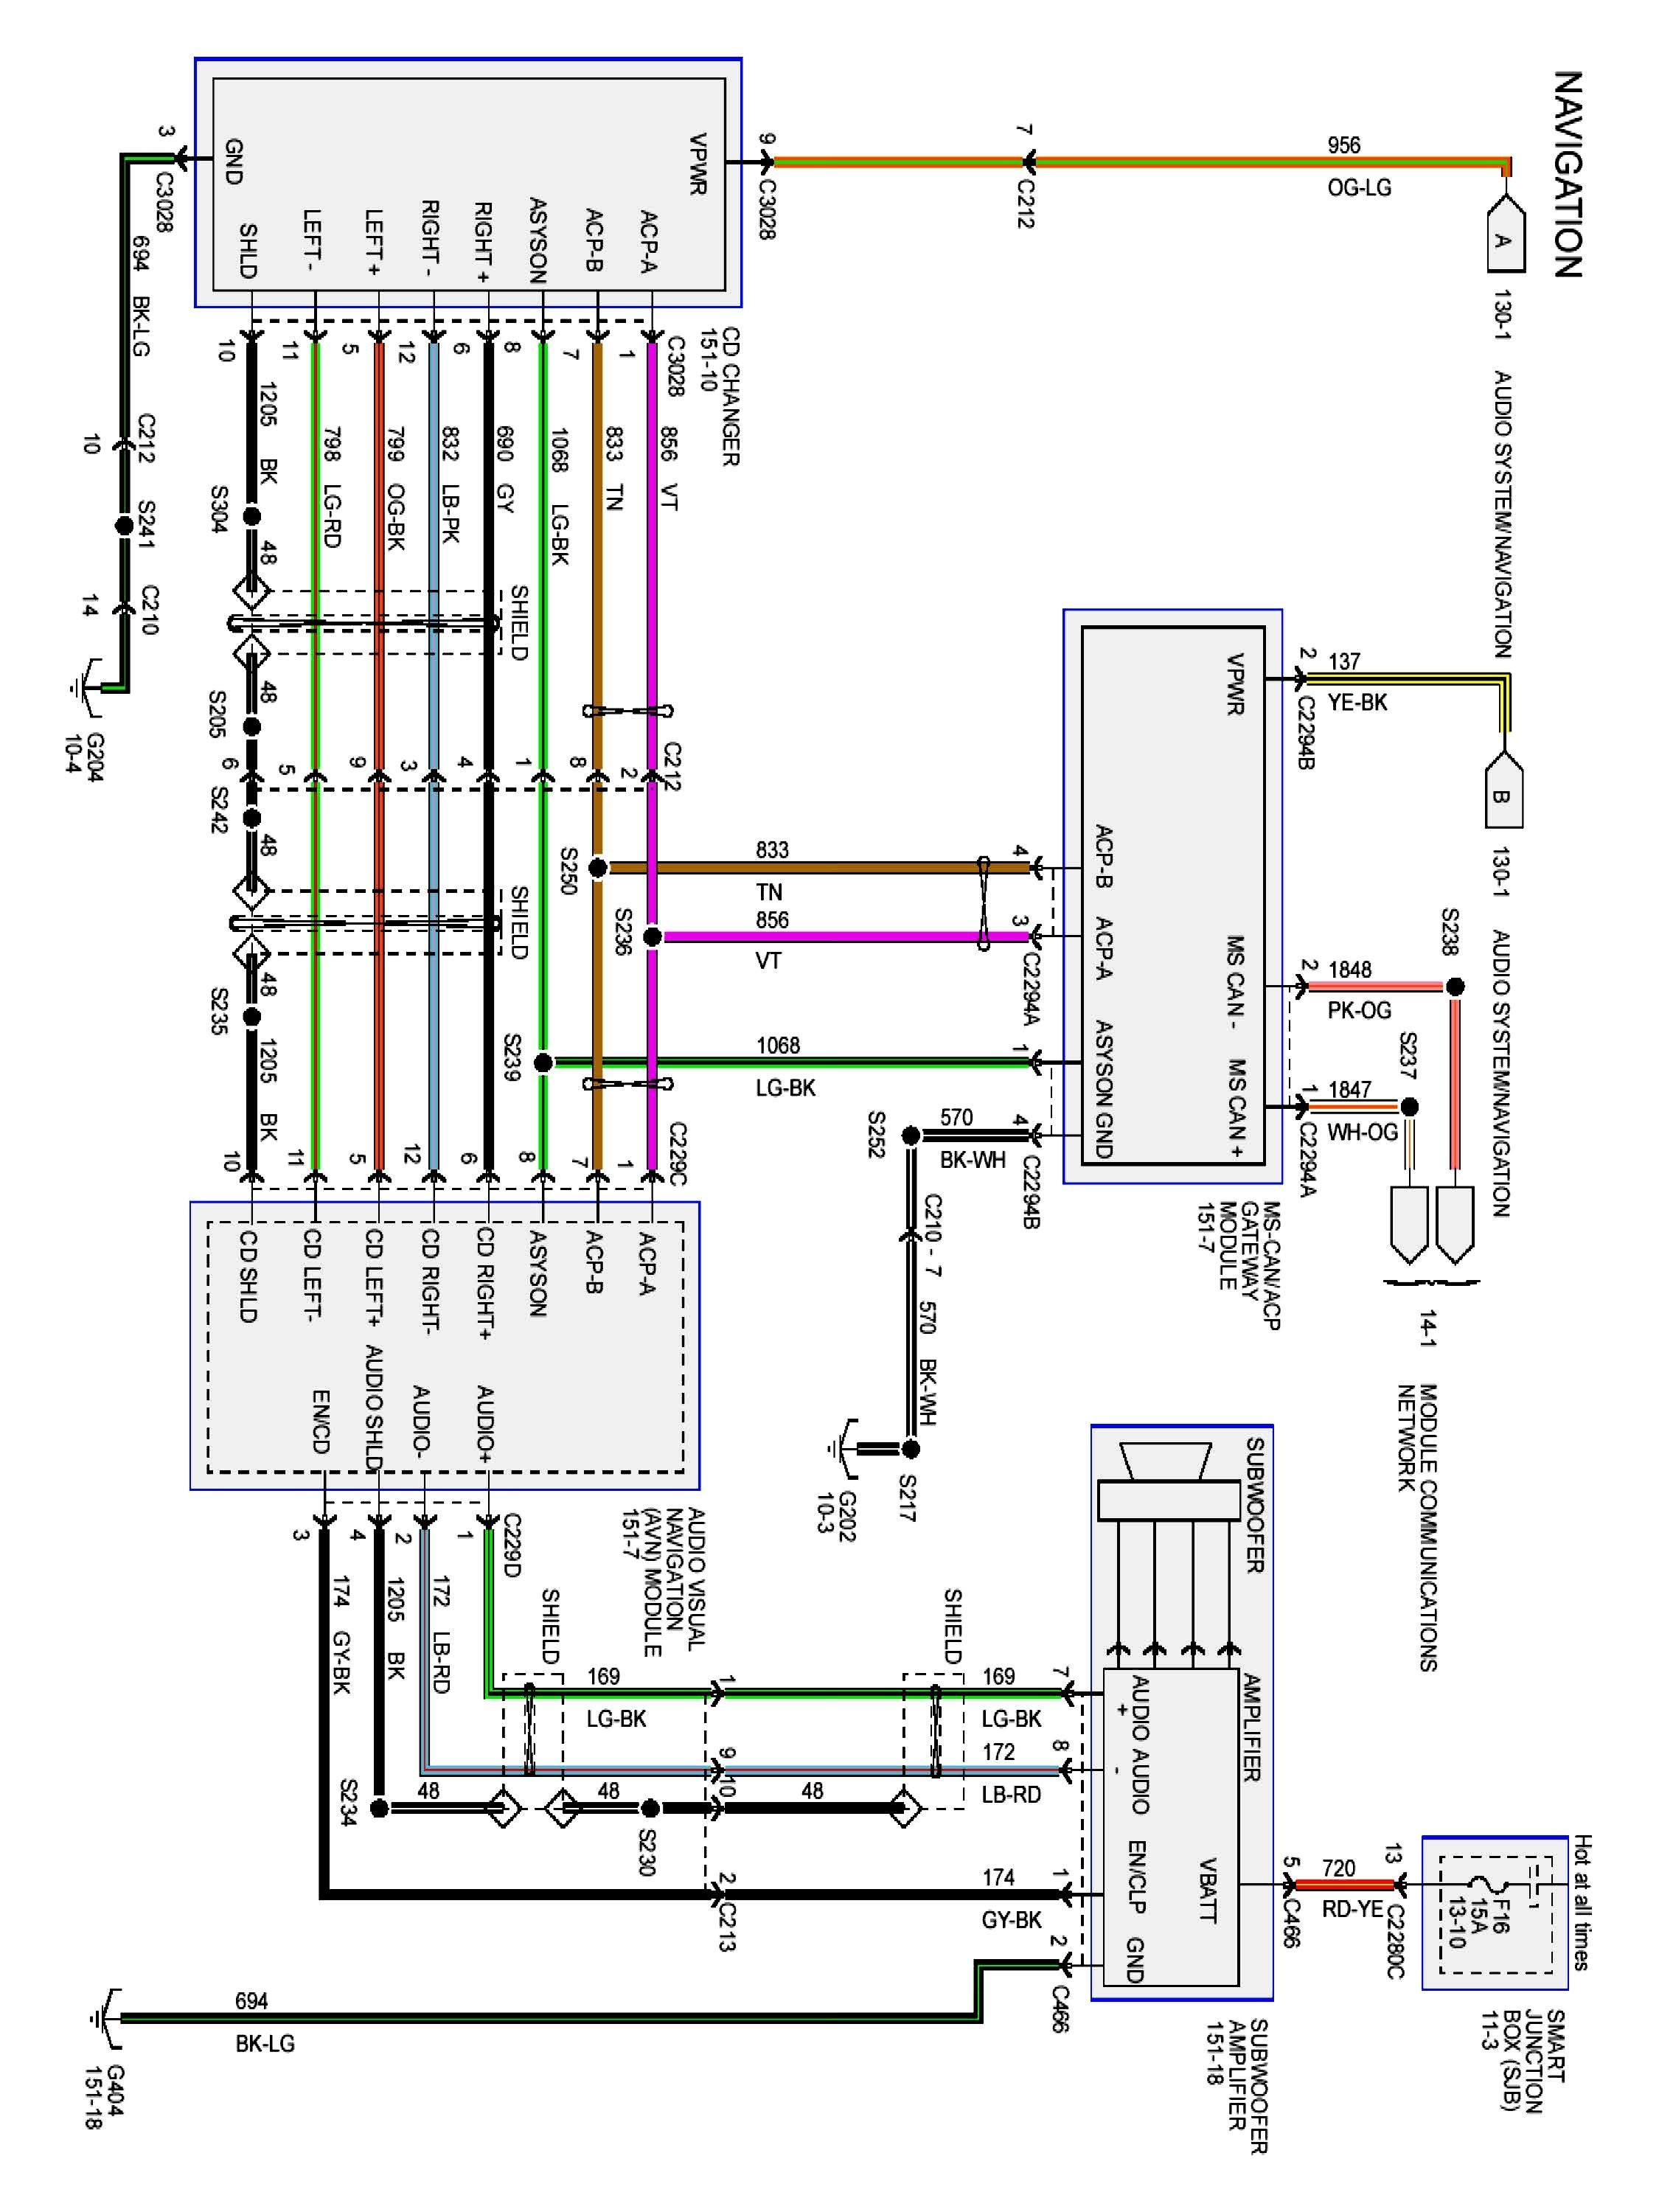 2005 ford Escape V6 Engine Diagram 2011 ford Escape Radio Wiring Diagram  Image Of 2005 ford